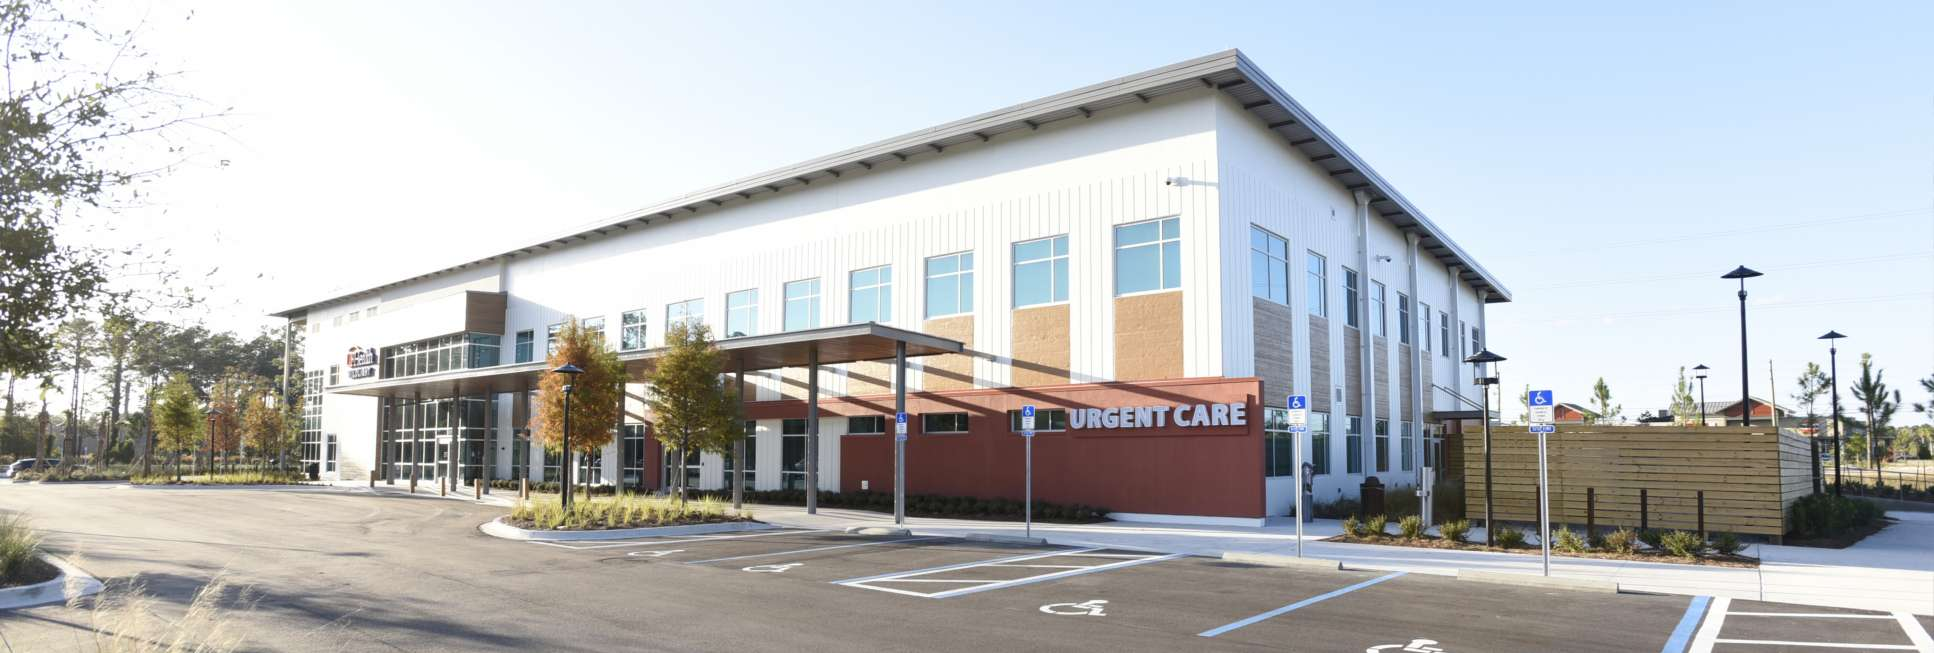 UF Health Wildlight – MOB Exterior, Urgent Care